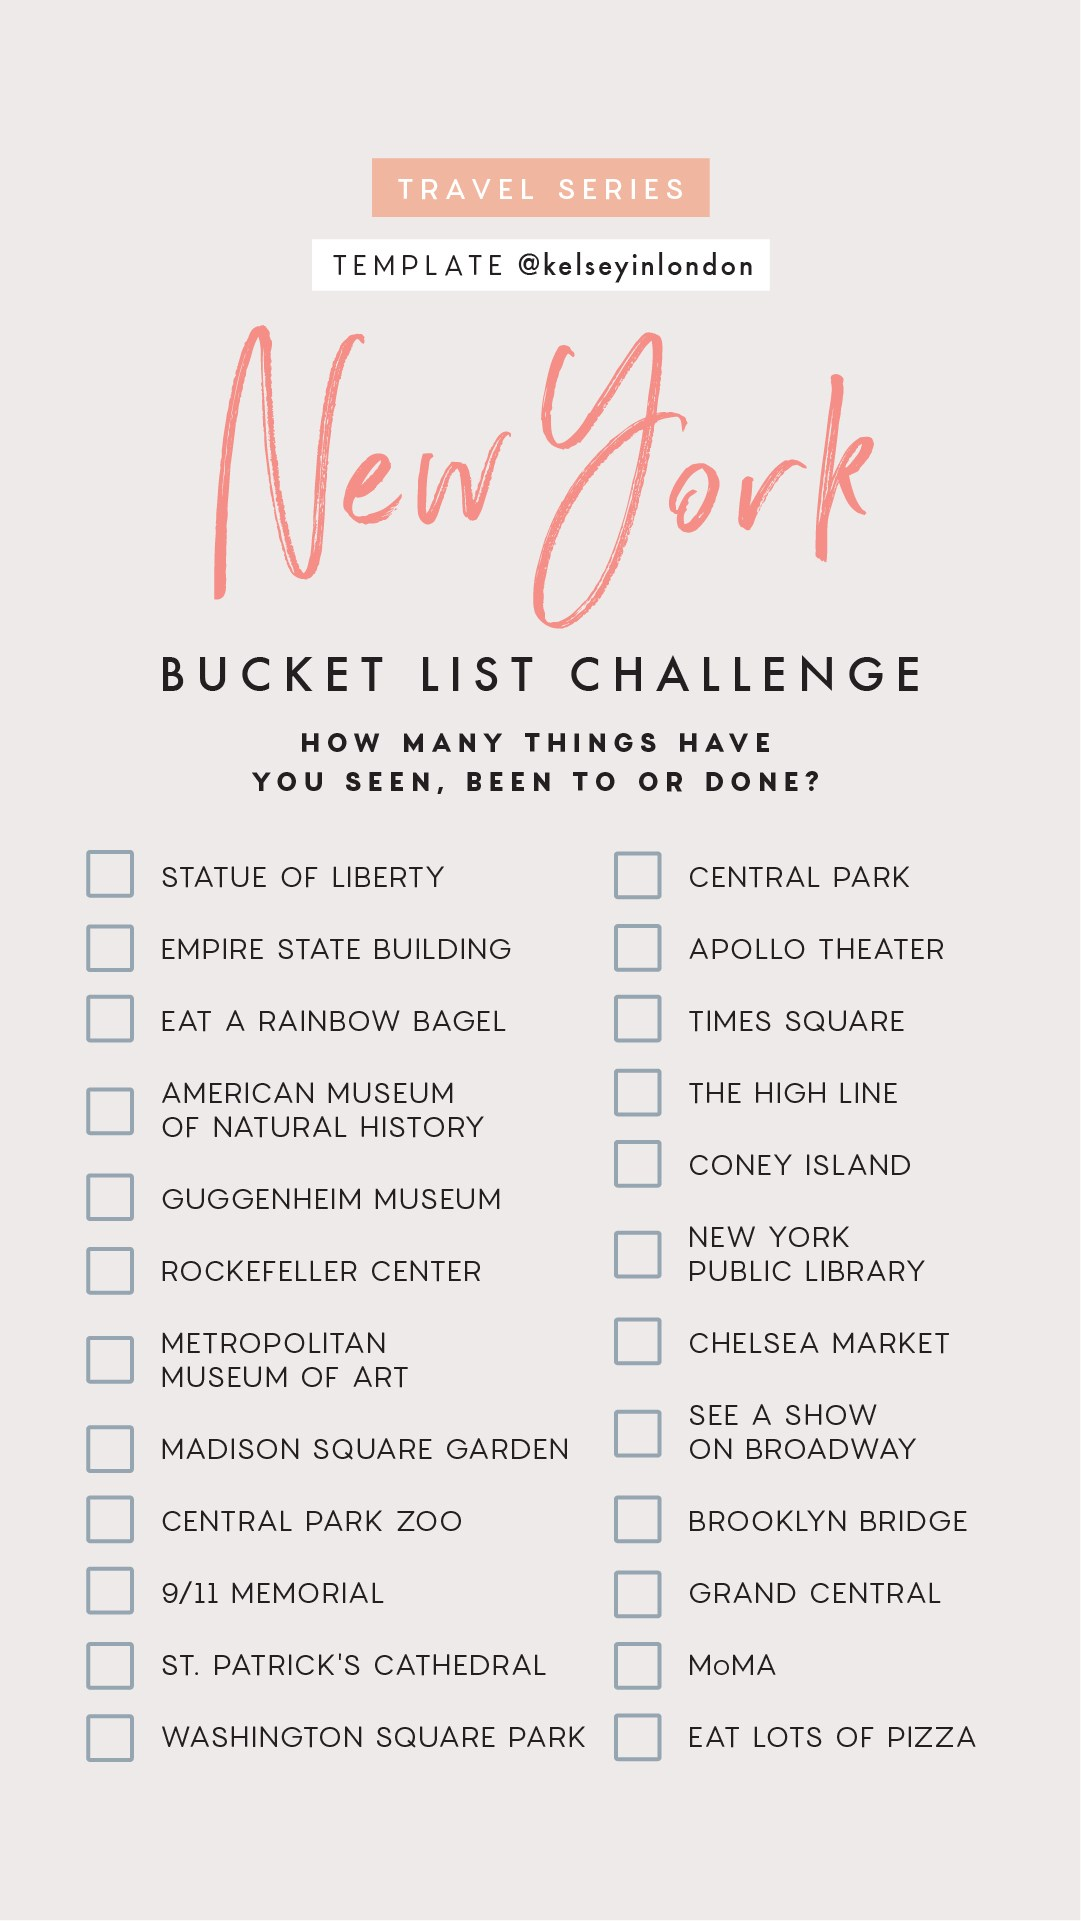 Top things to do in New York Bucket list Instagram Story Template kelseyinlondon Kelsey Heinrichs What to do in New York Where to go in New York top places in New York